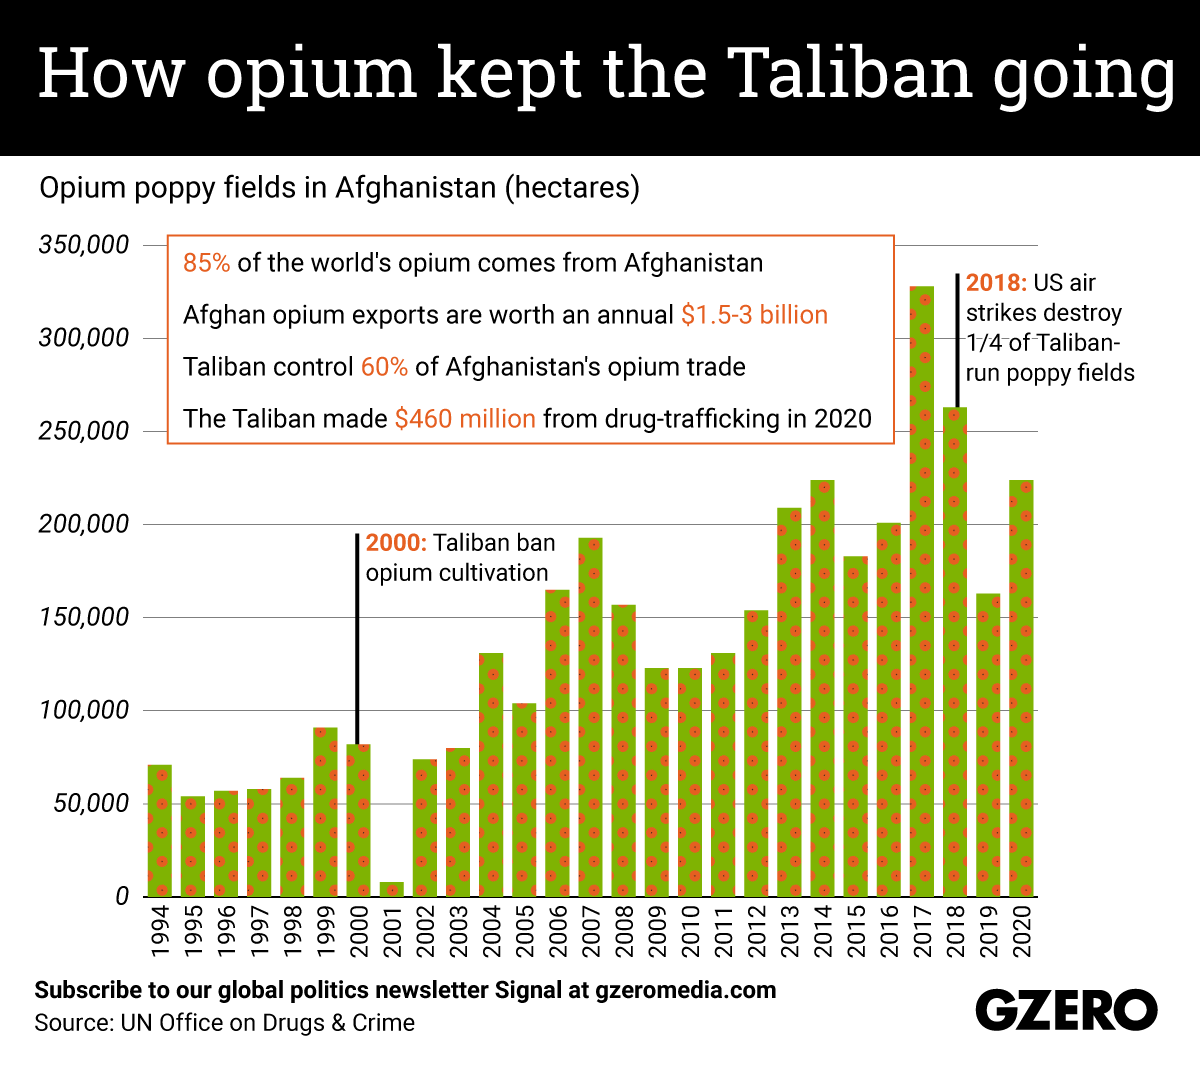 The Graphic Truth: How opium kept the Taliban going